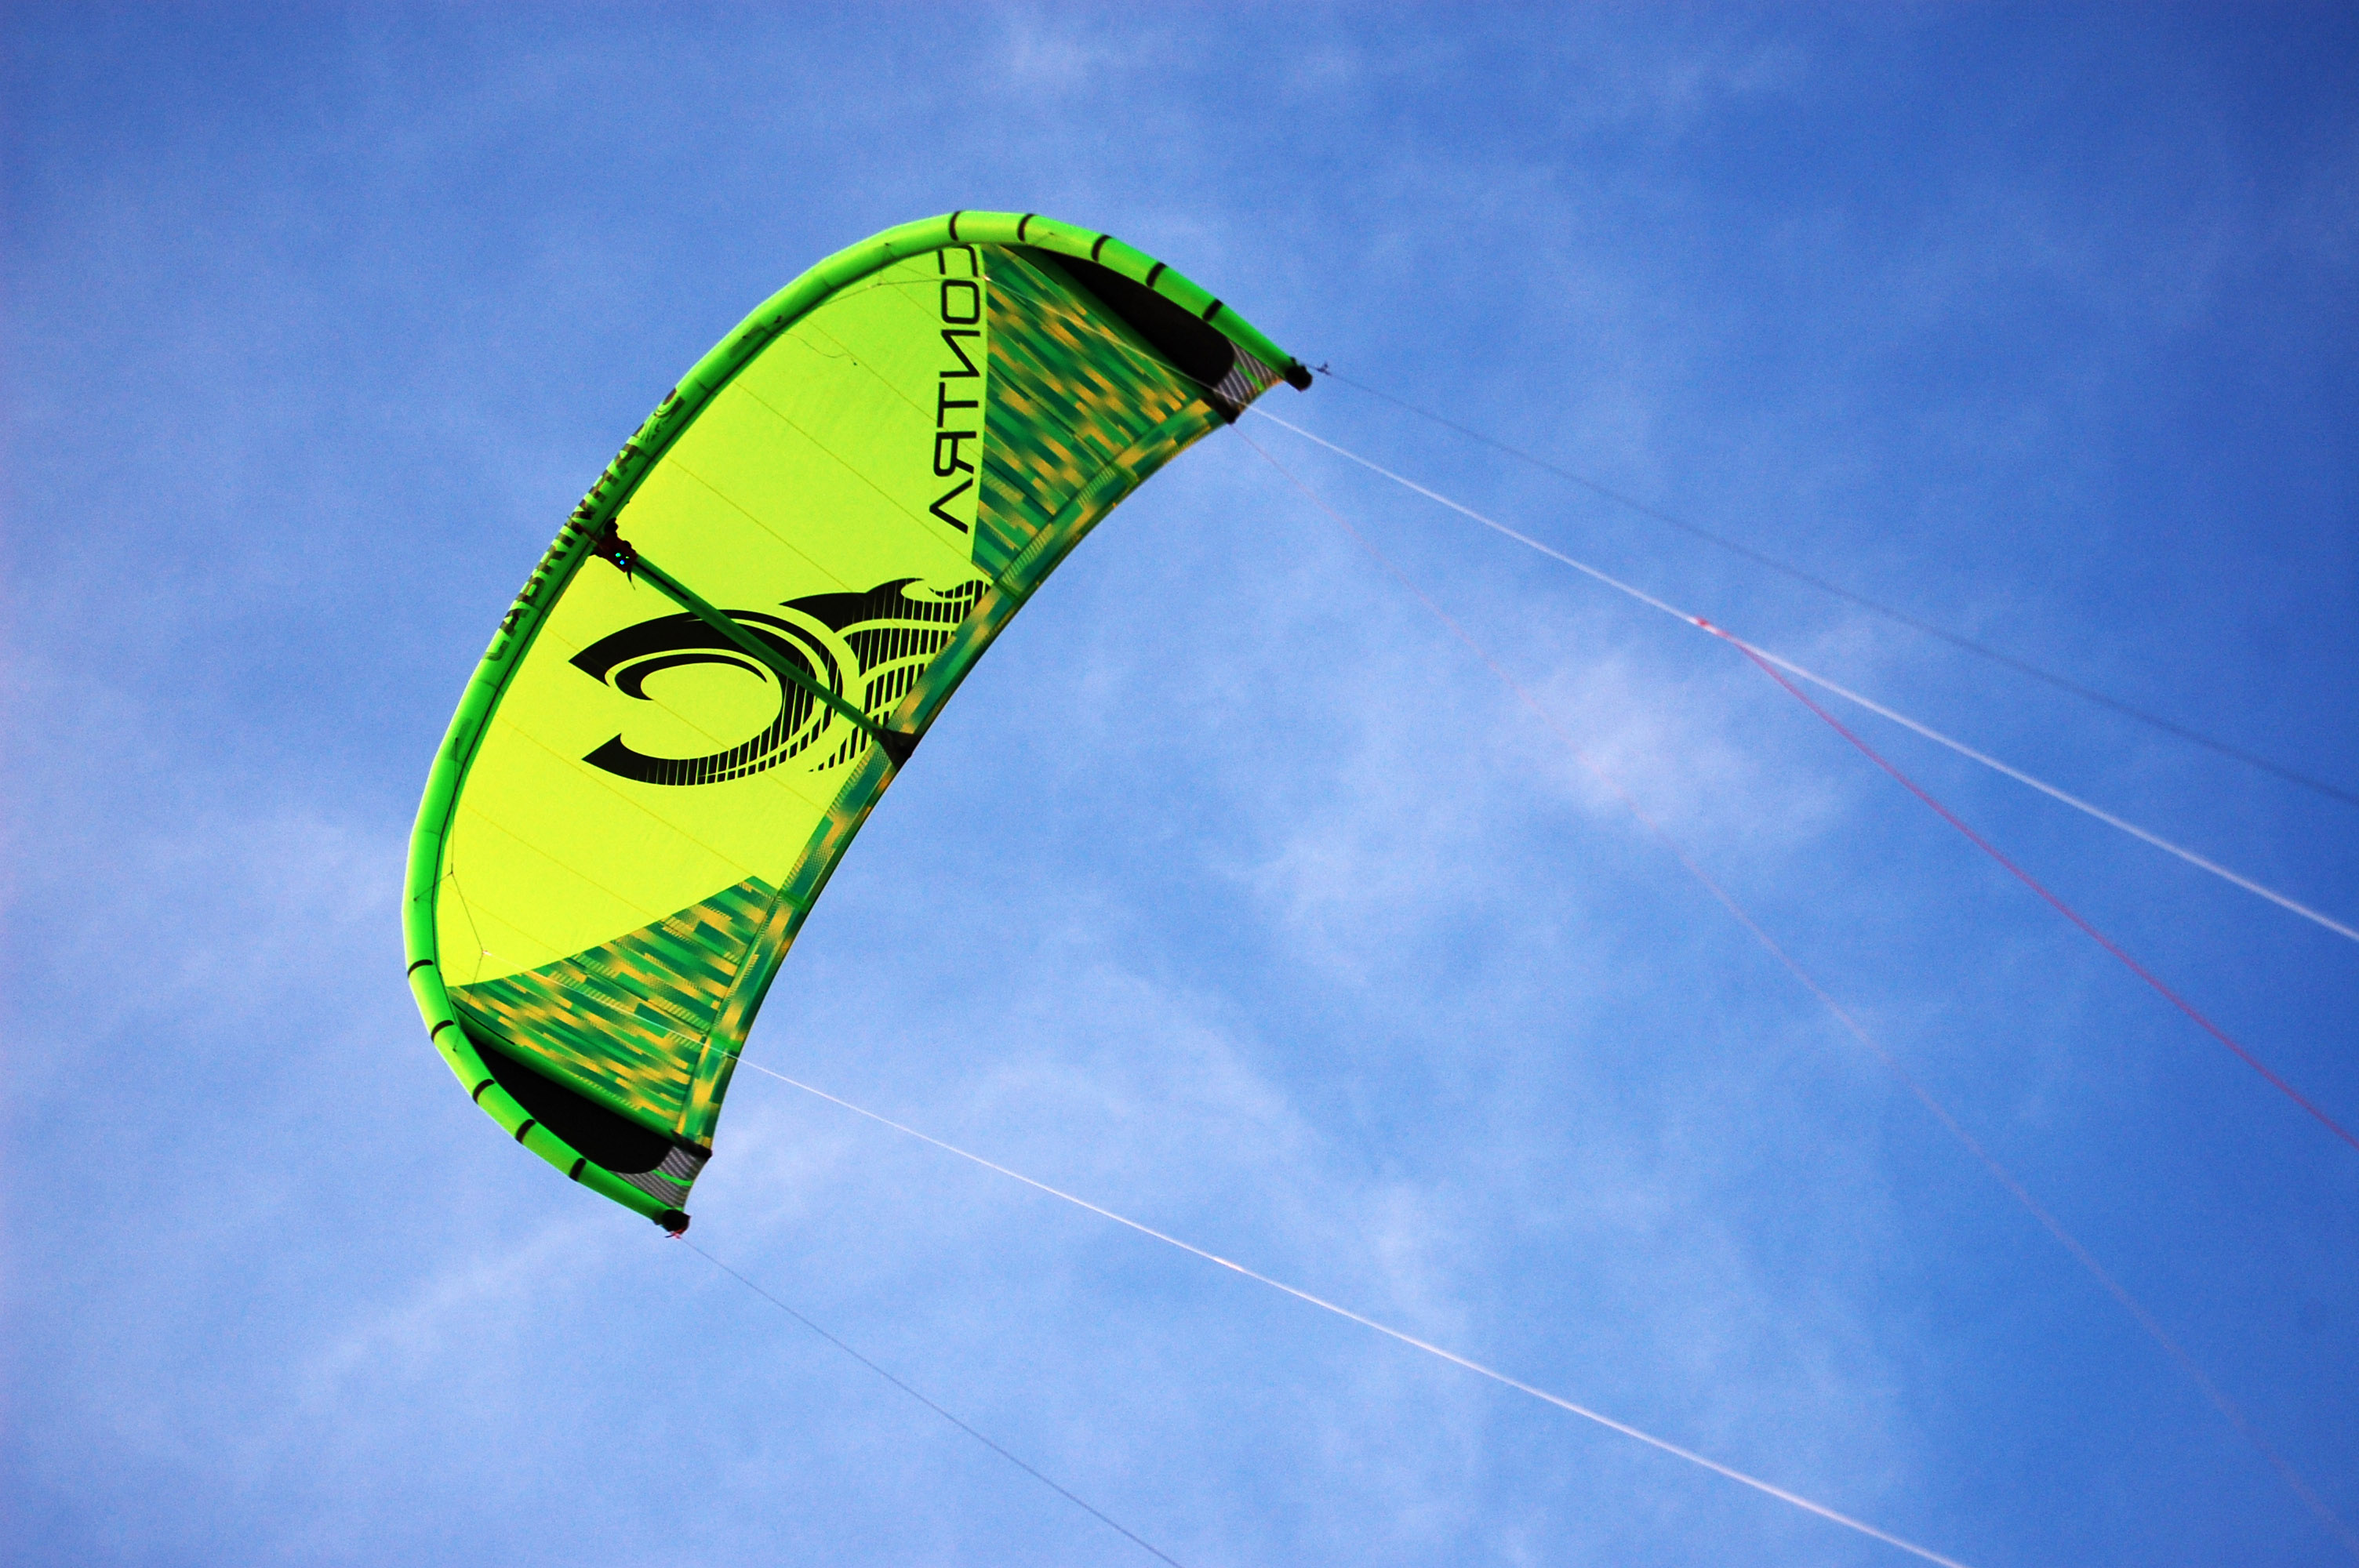 The Future of Wind Energy May Involve These Really, Really Big Kites